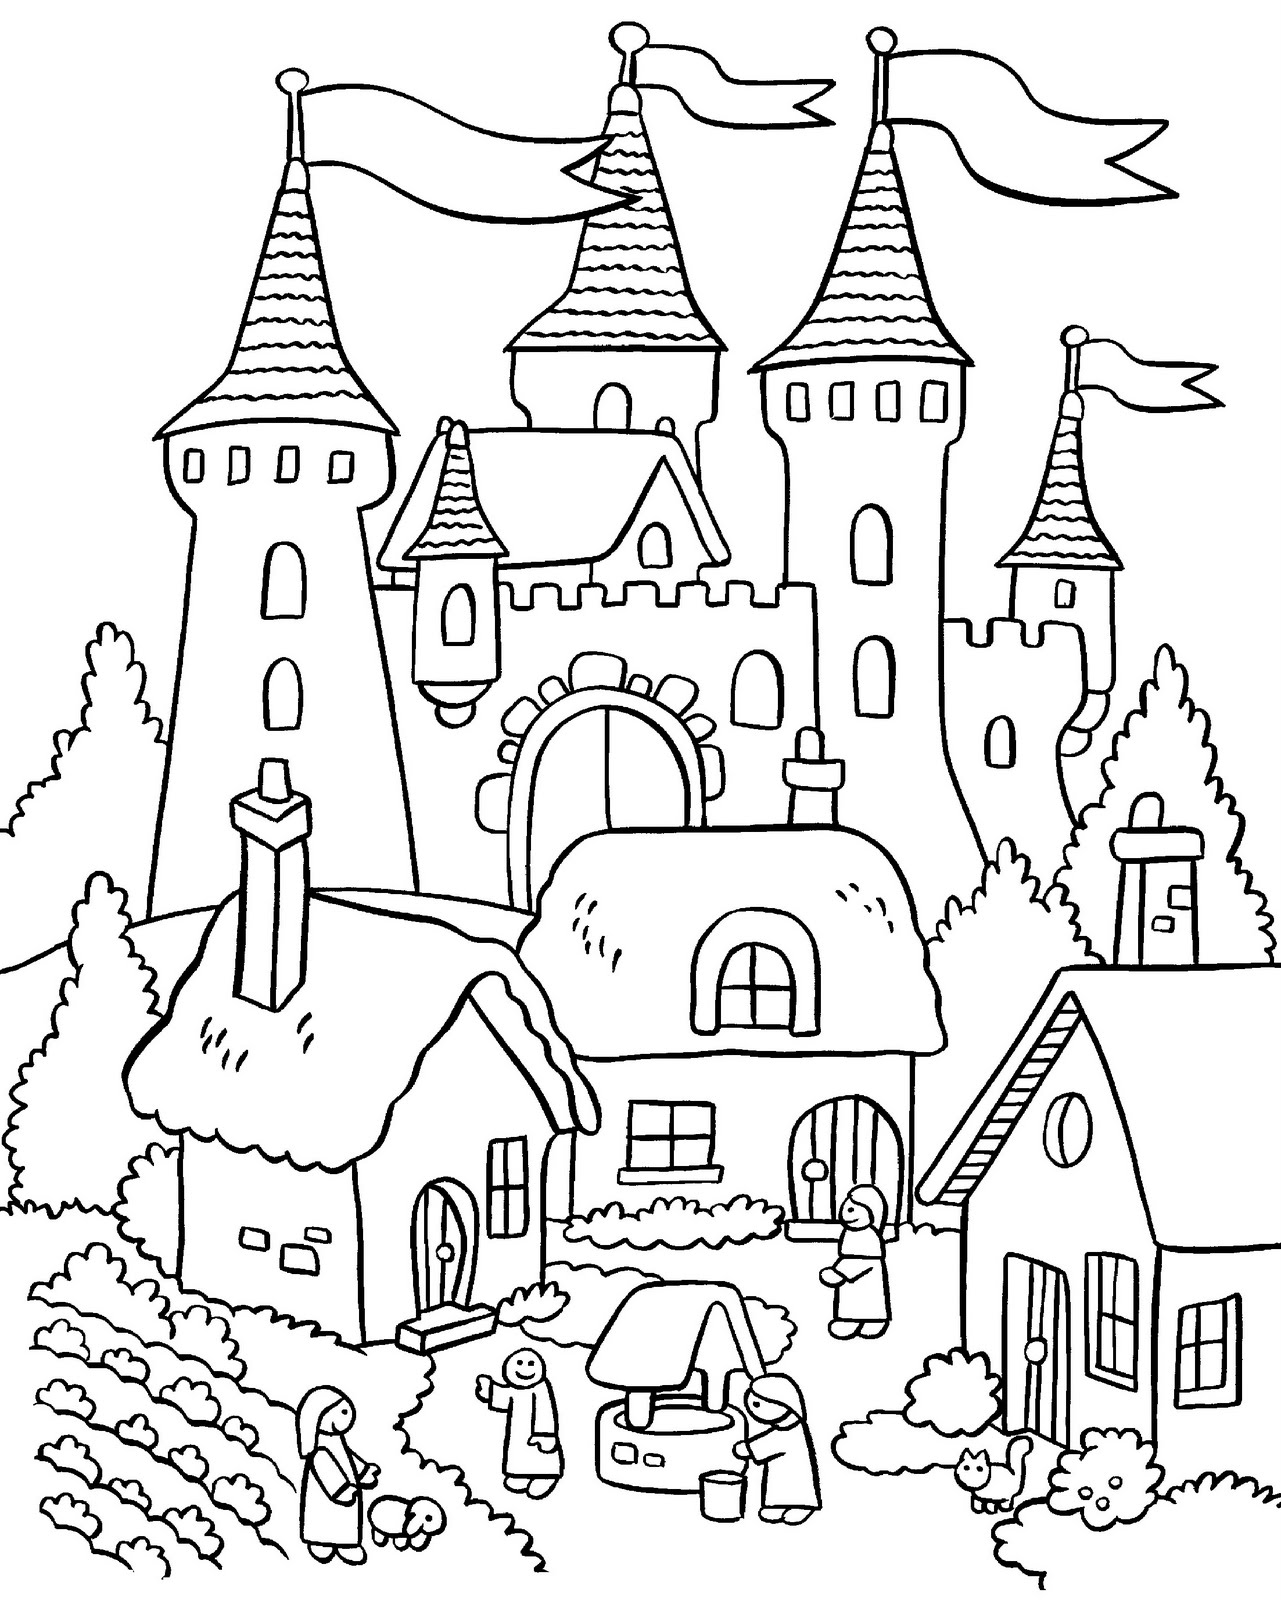 coloring pages house full house coloring pages at getdrawings free download house pages coloring